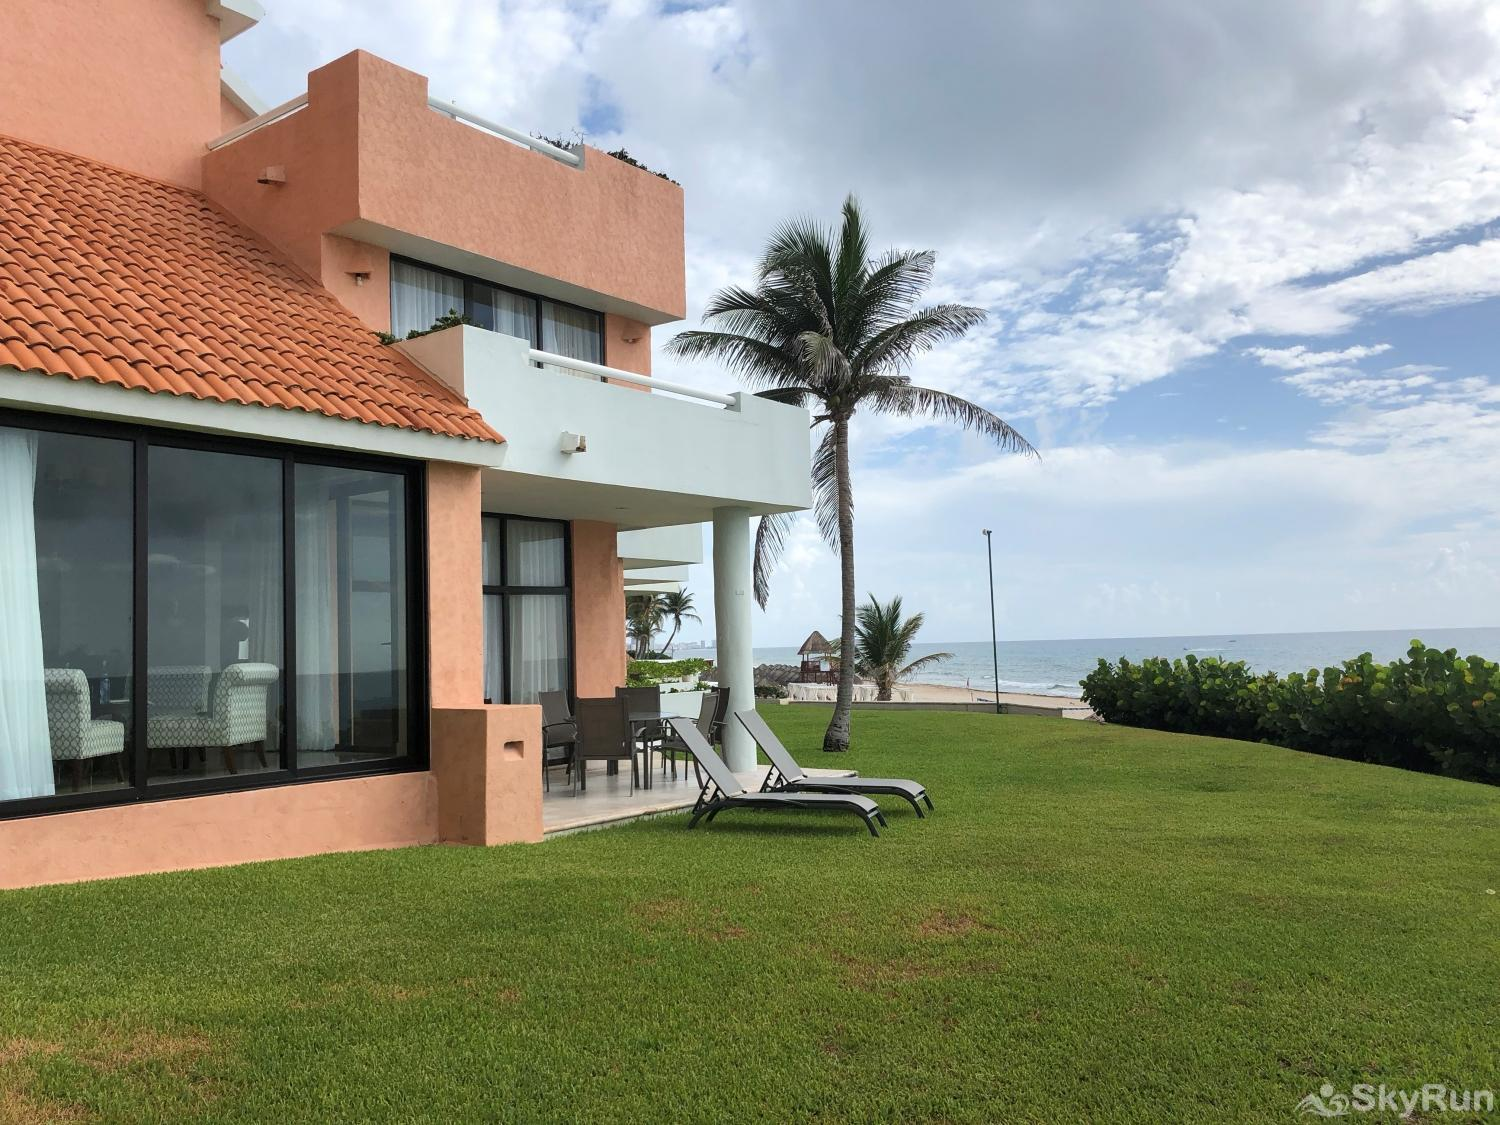 Best Beachfront Private Villa , 4Bdr | Omni Cancun Hotel and Villas PRME location Resort Kinich Villa 33 Villa 1001.  Beachfront townhome on 3 stories.